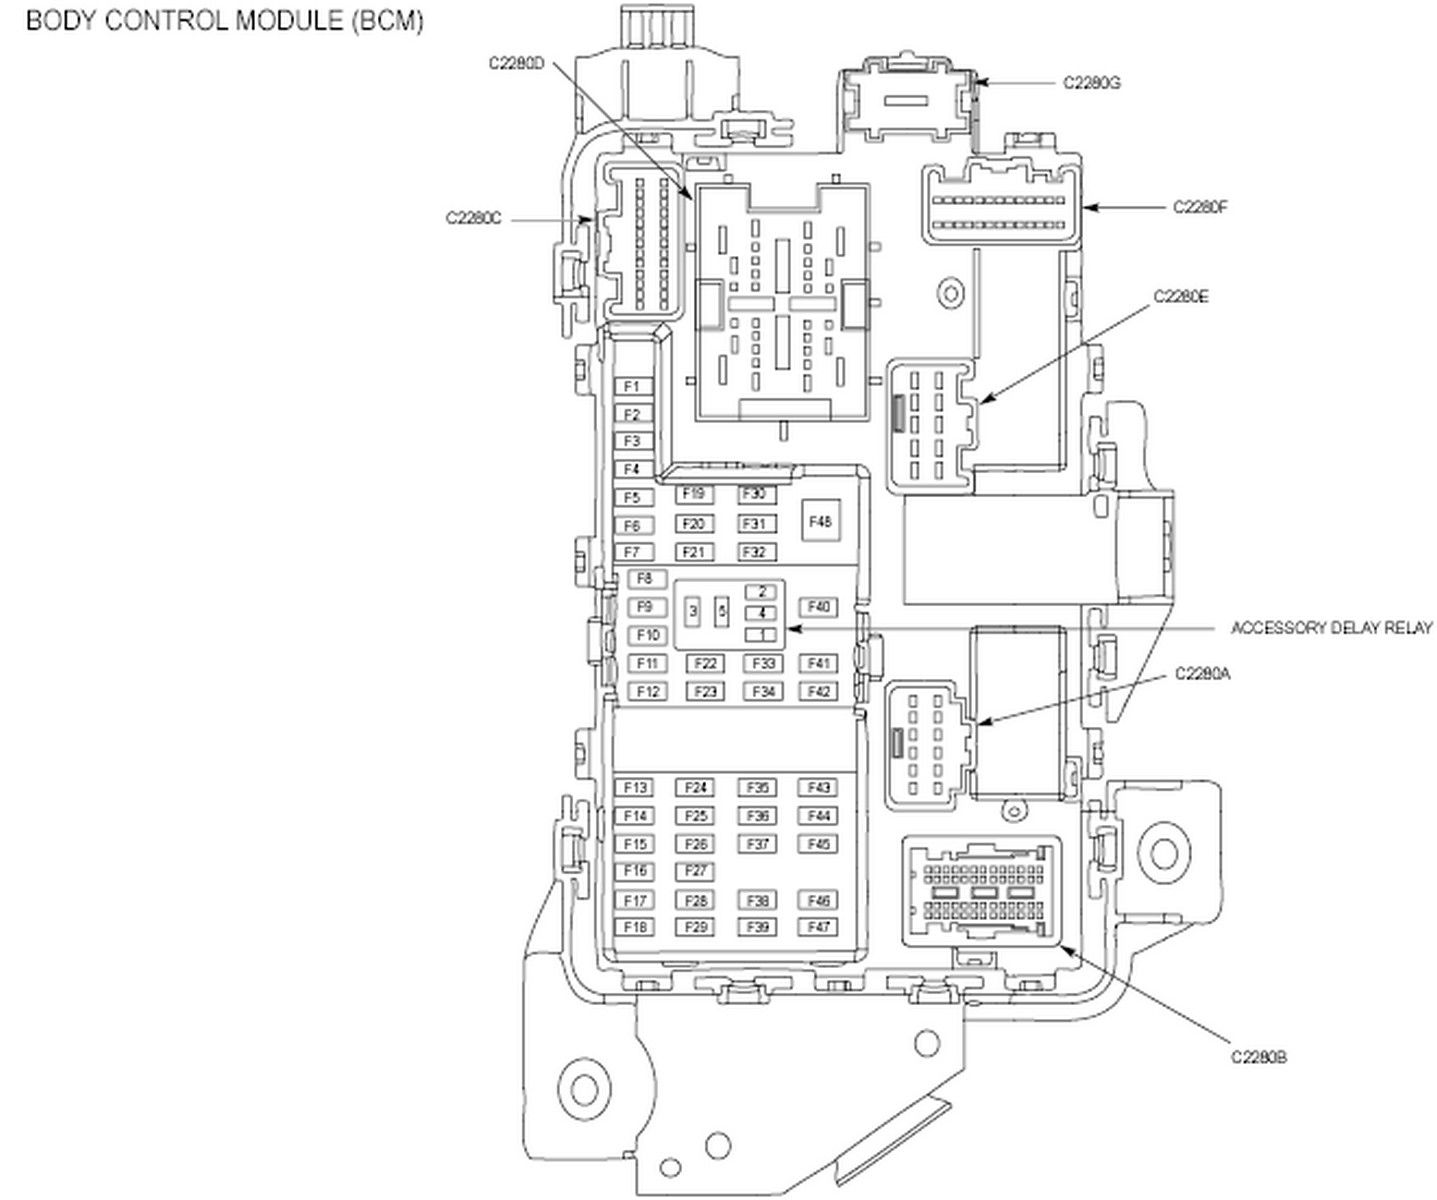 2012 Ford F150 Supercab Interior Light Wiring Diagram 2014